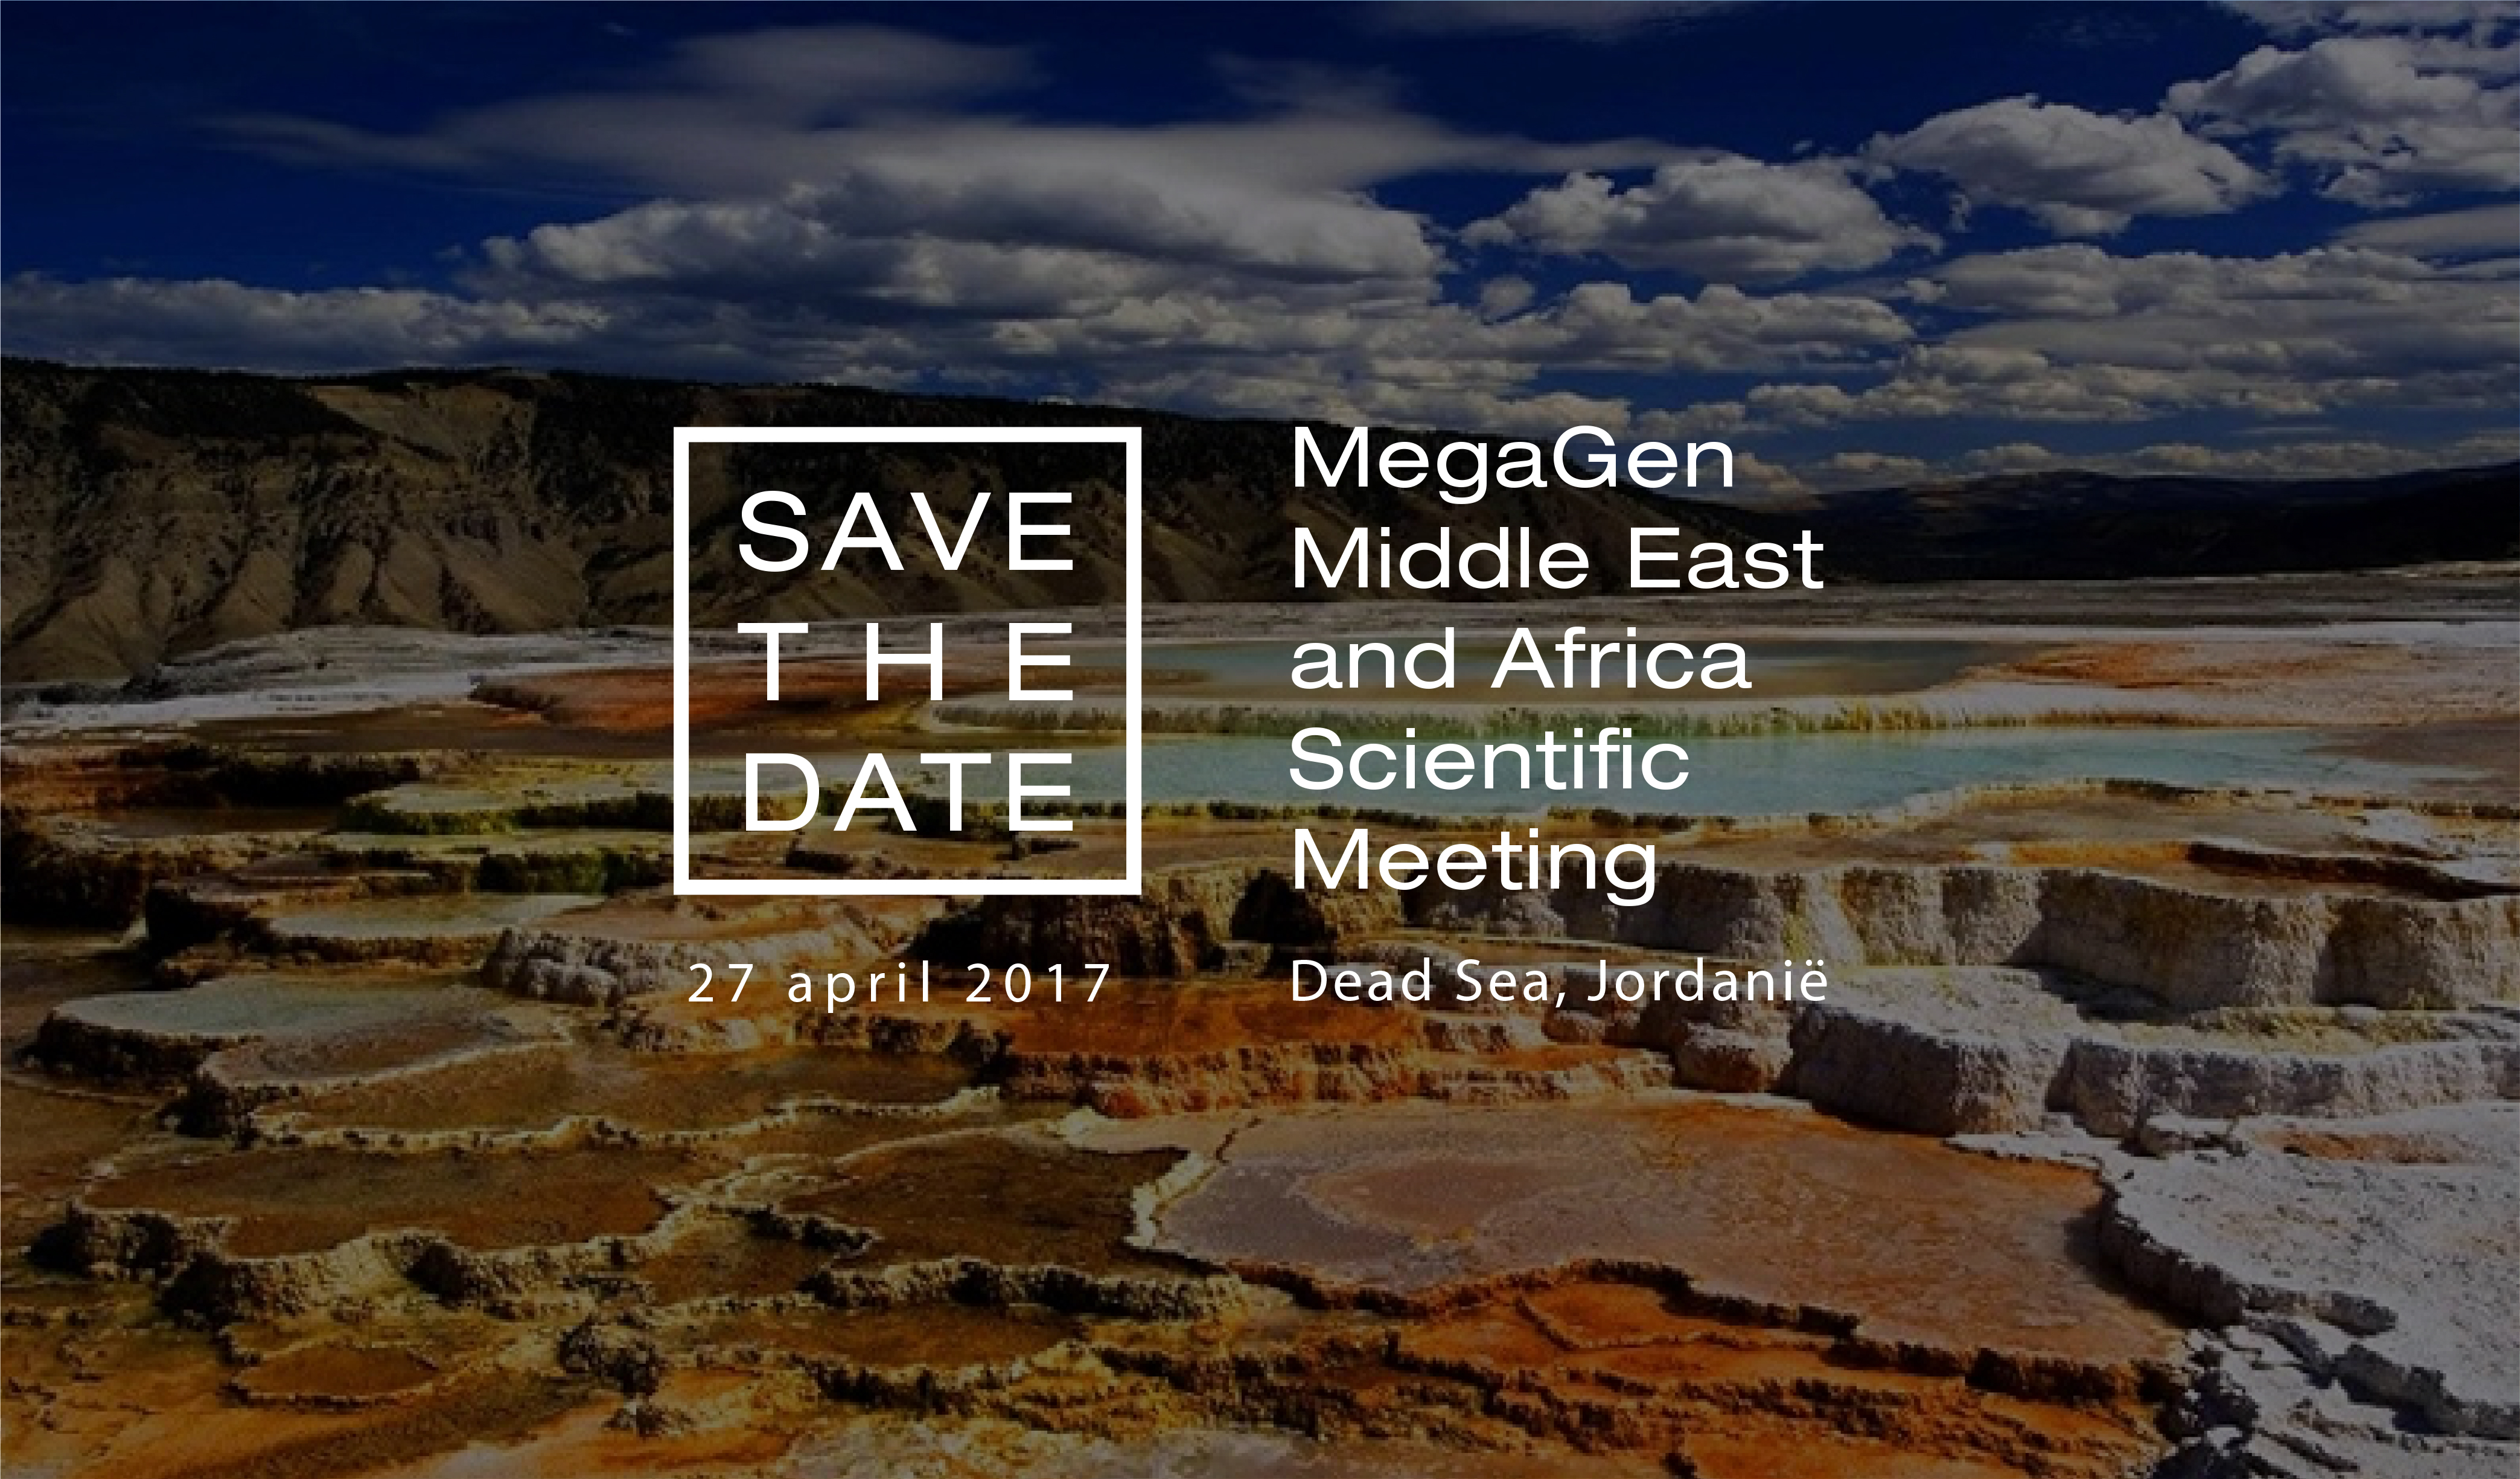 megagen-middle-east-and-africa-scientific-meeting